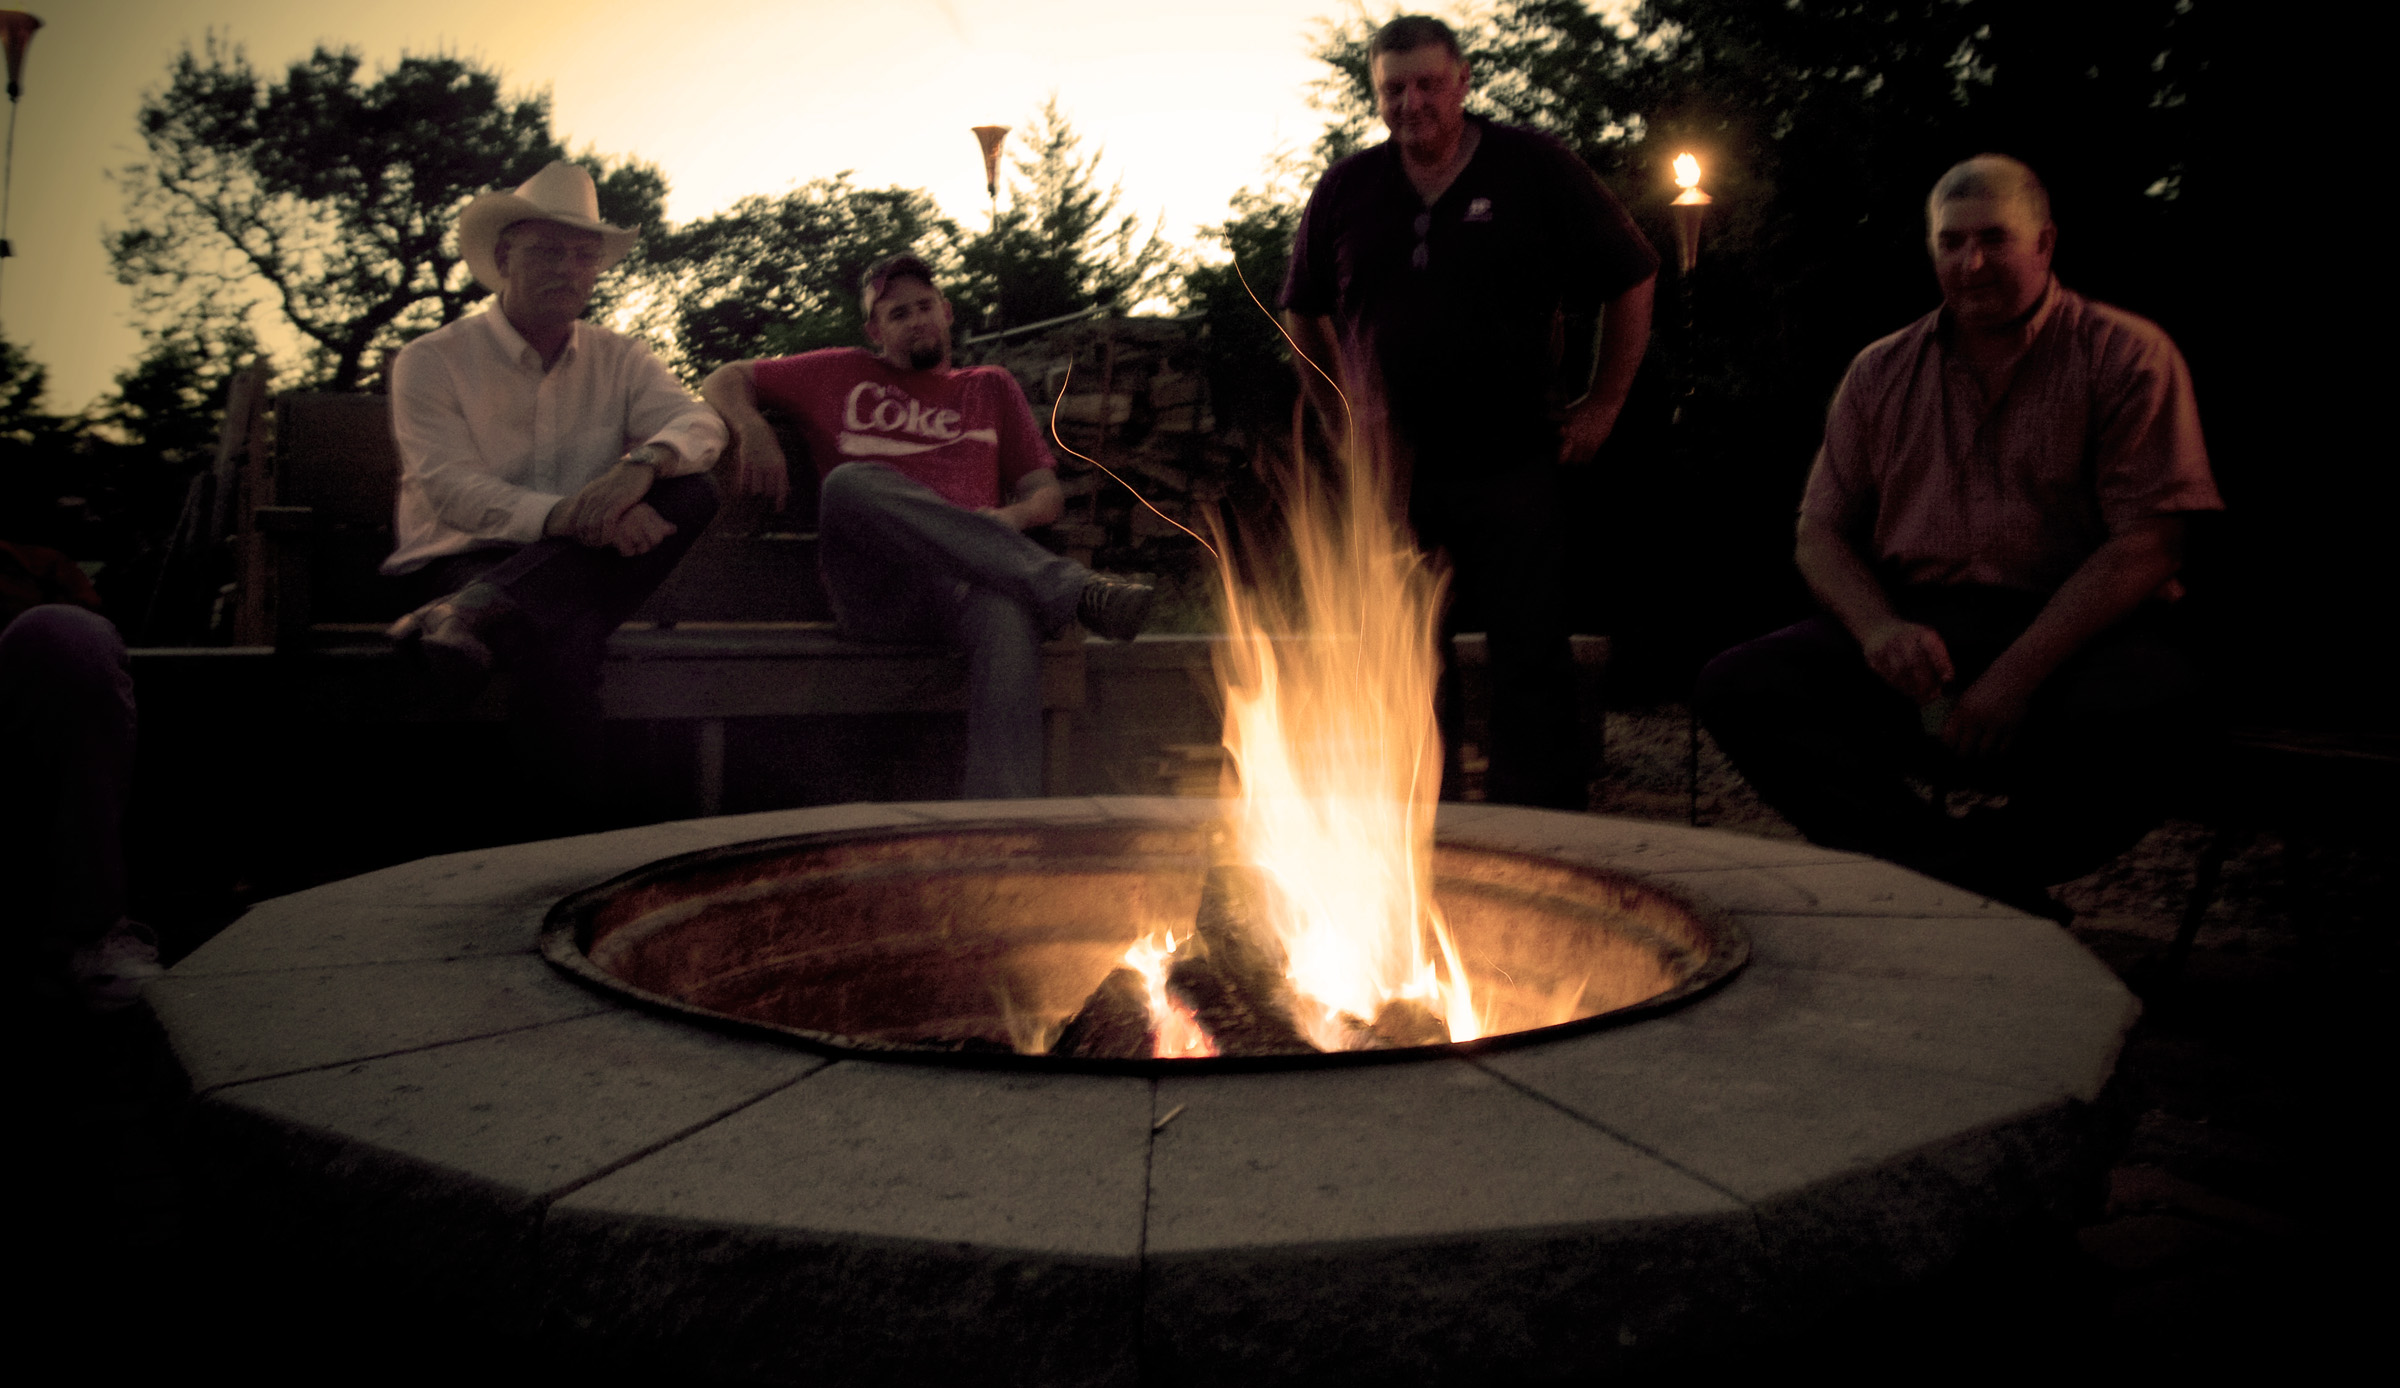 Hanging out around the firepit